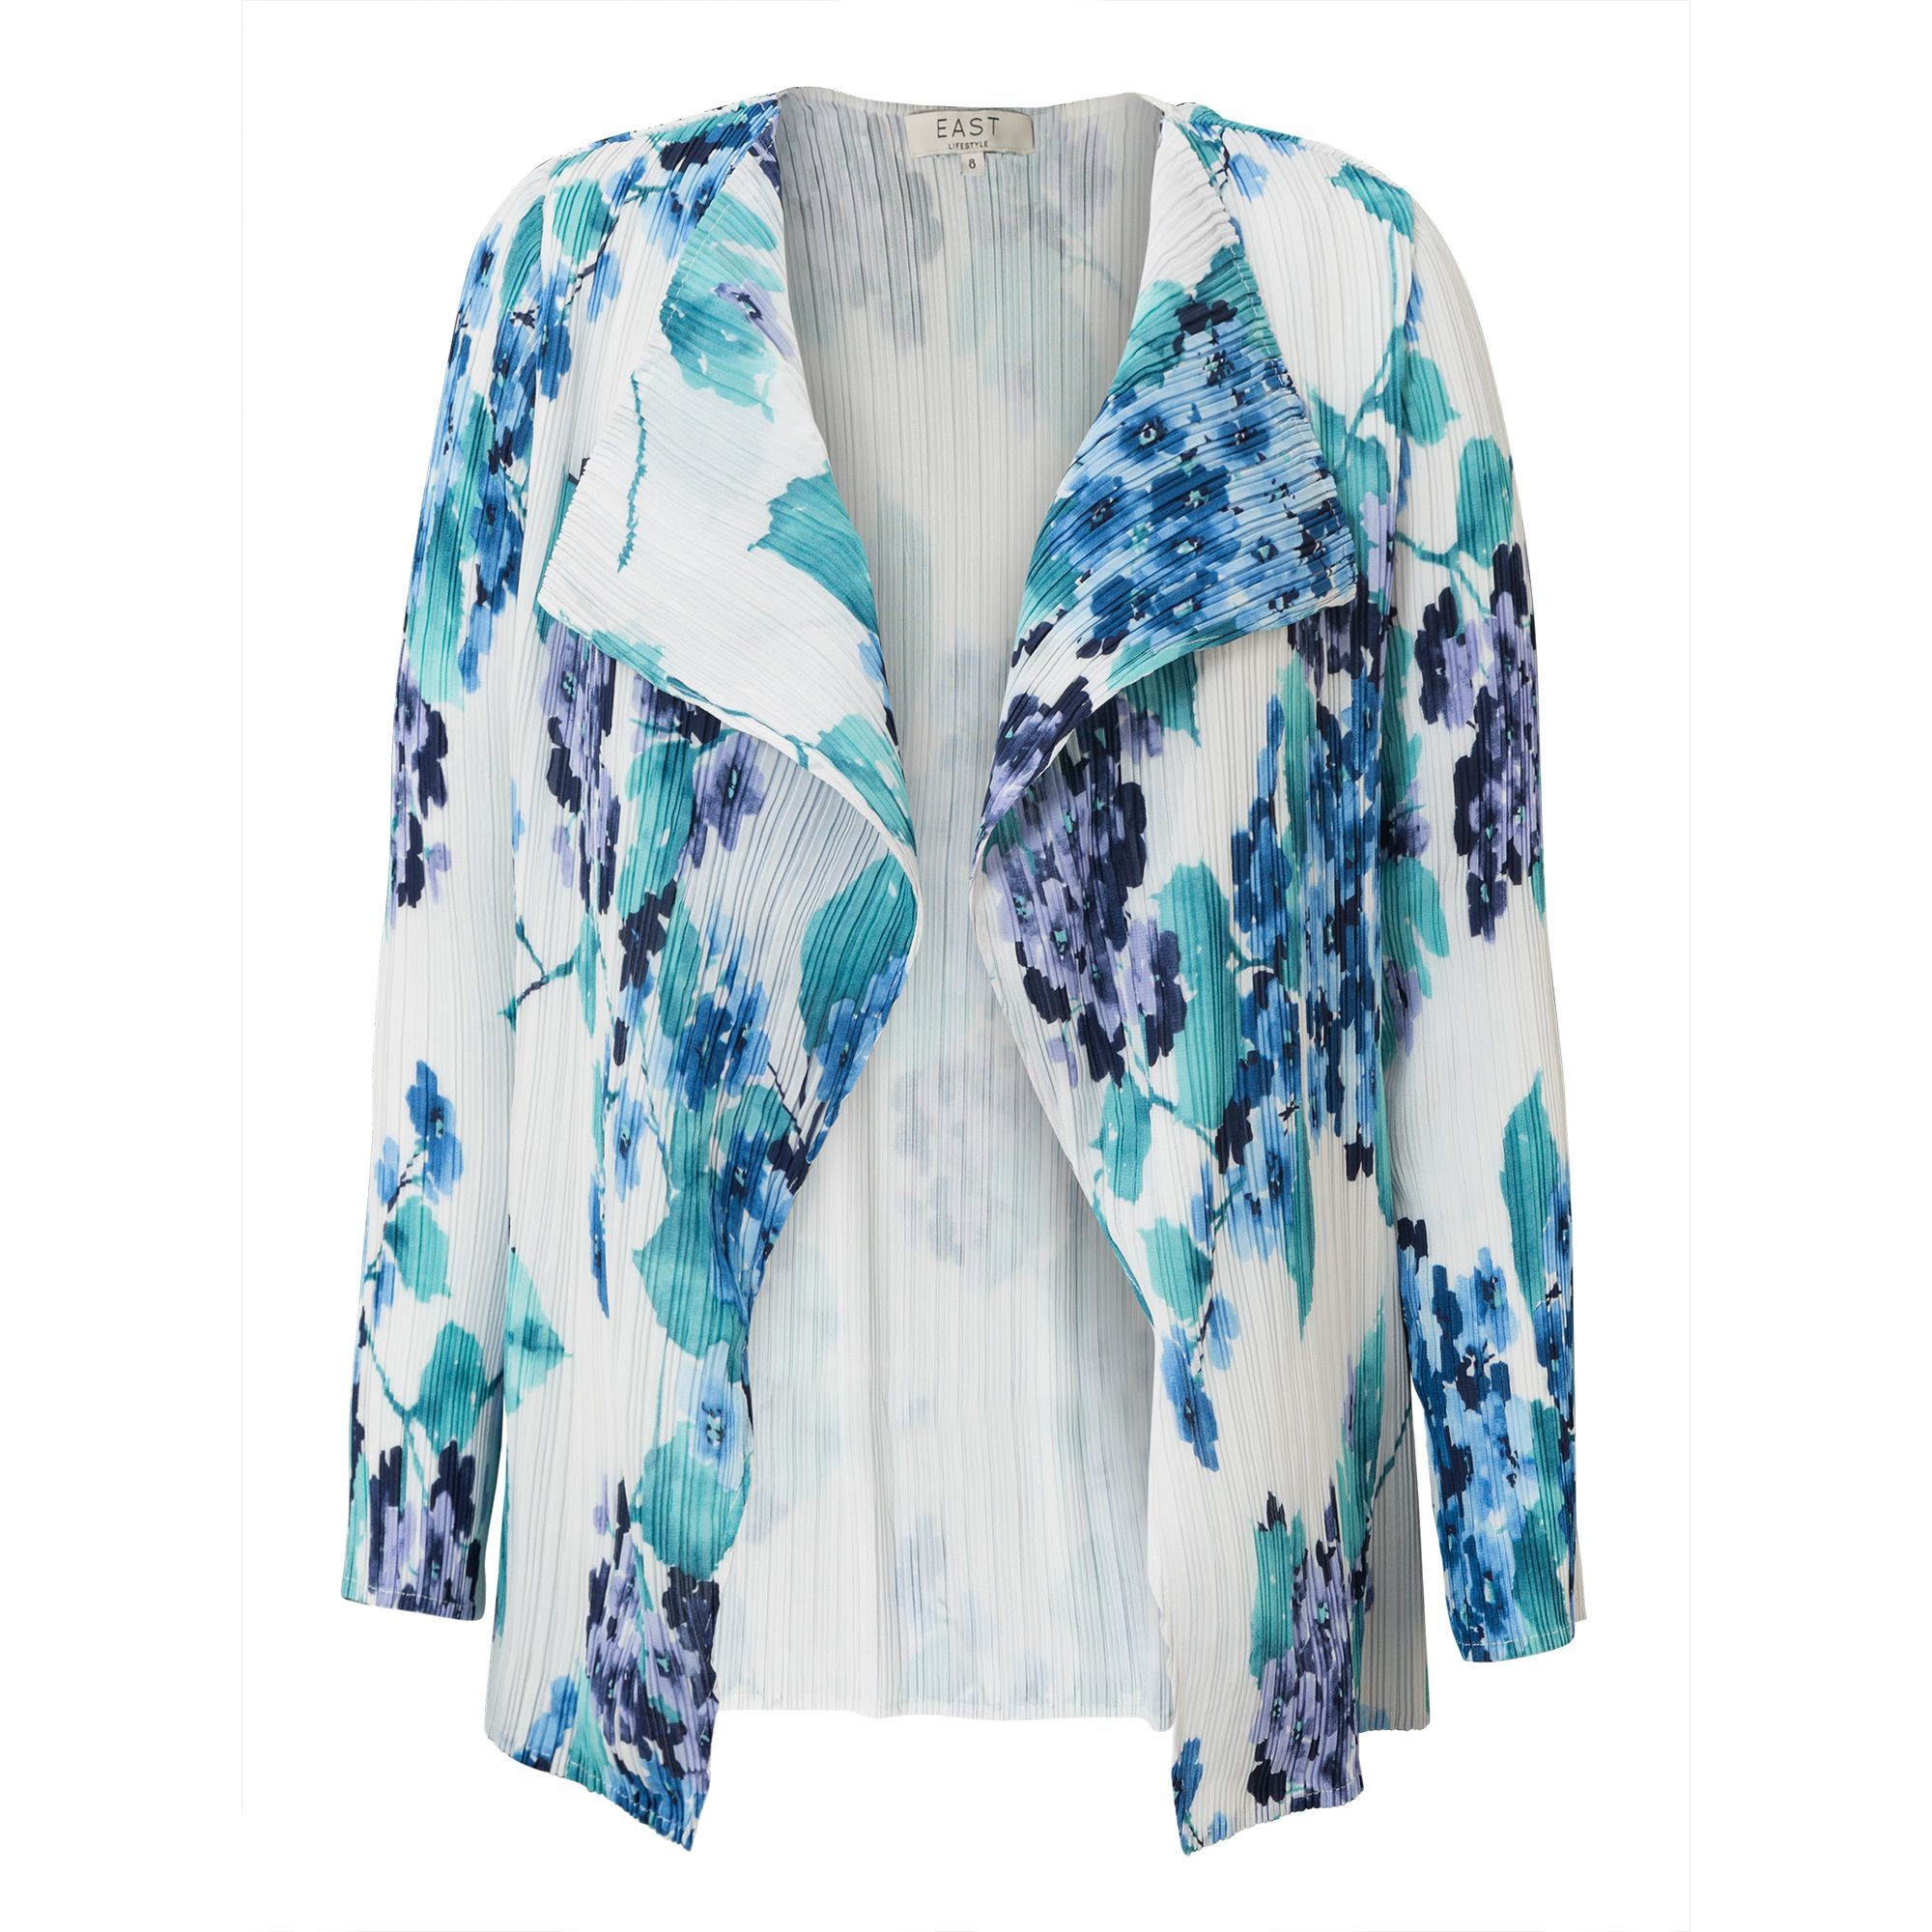 East Hydrangea Print Pleat Jacket, Blue